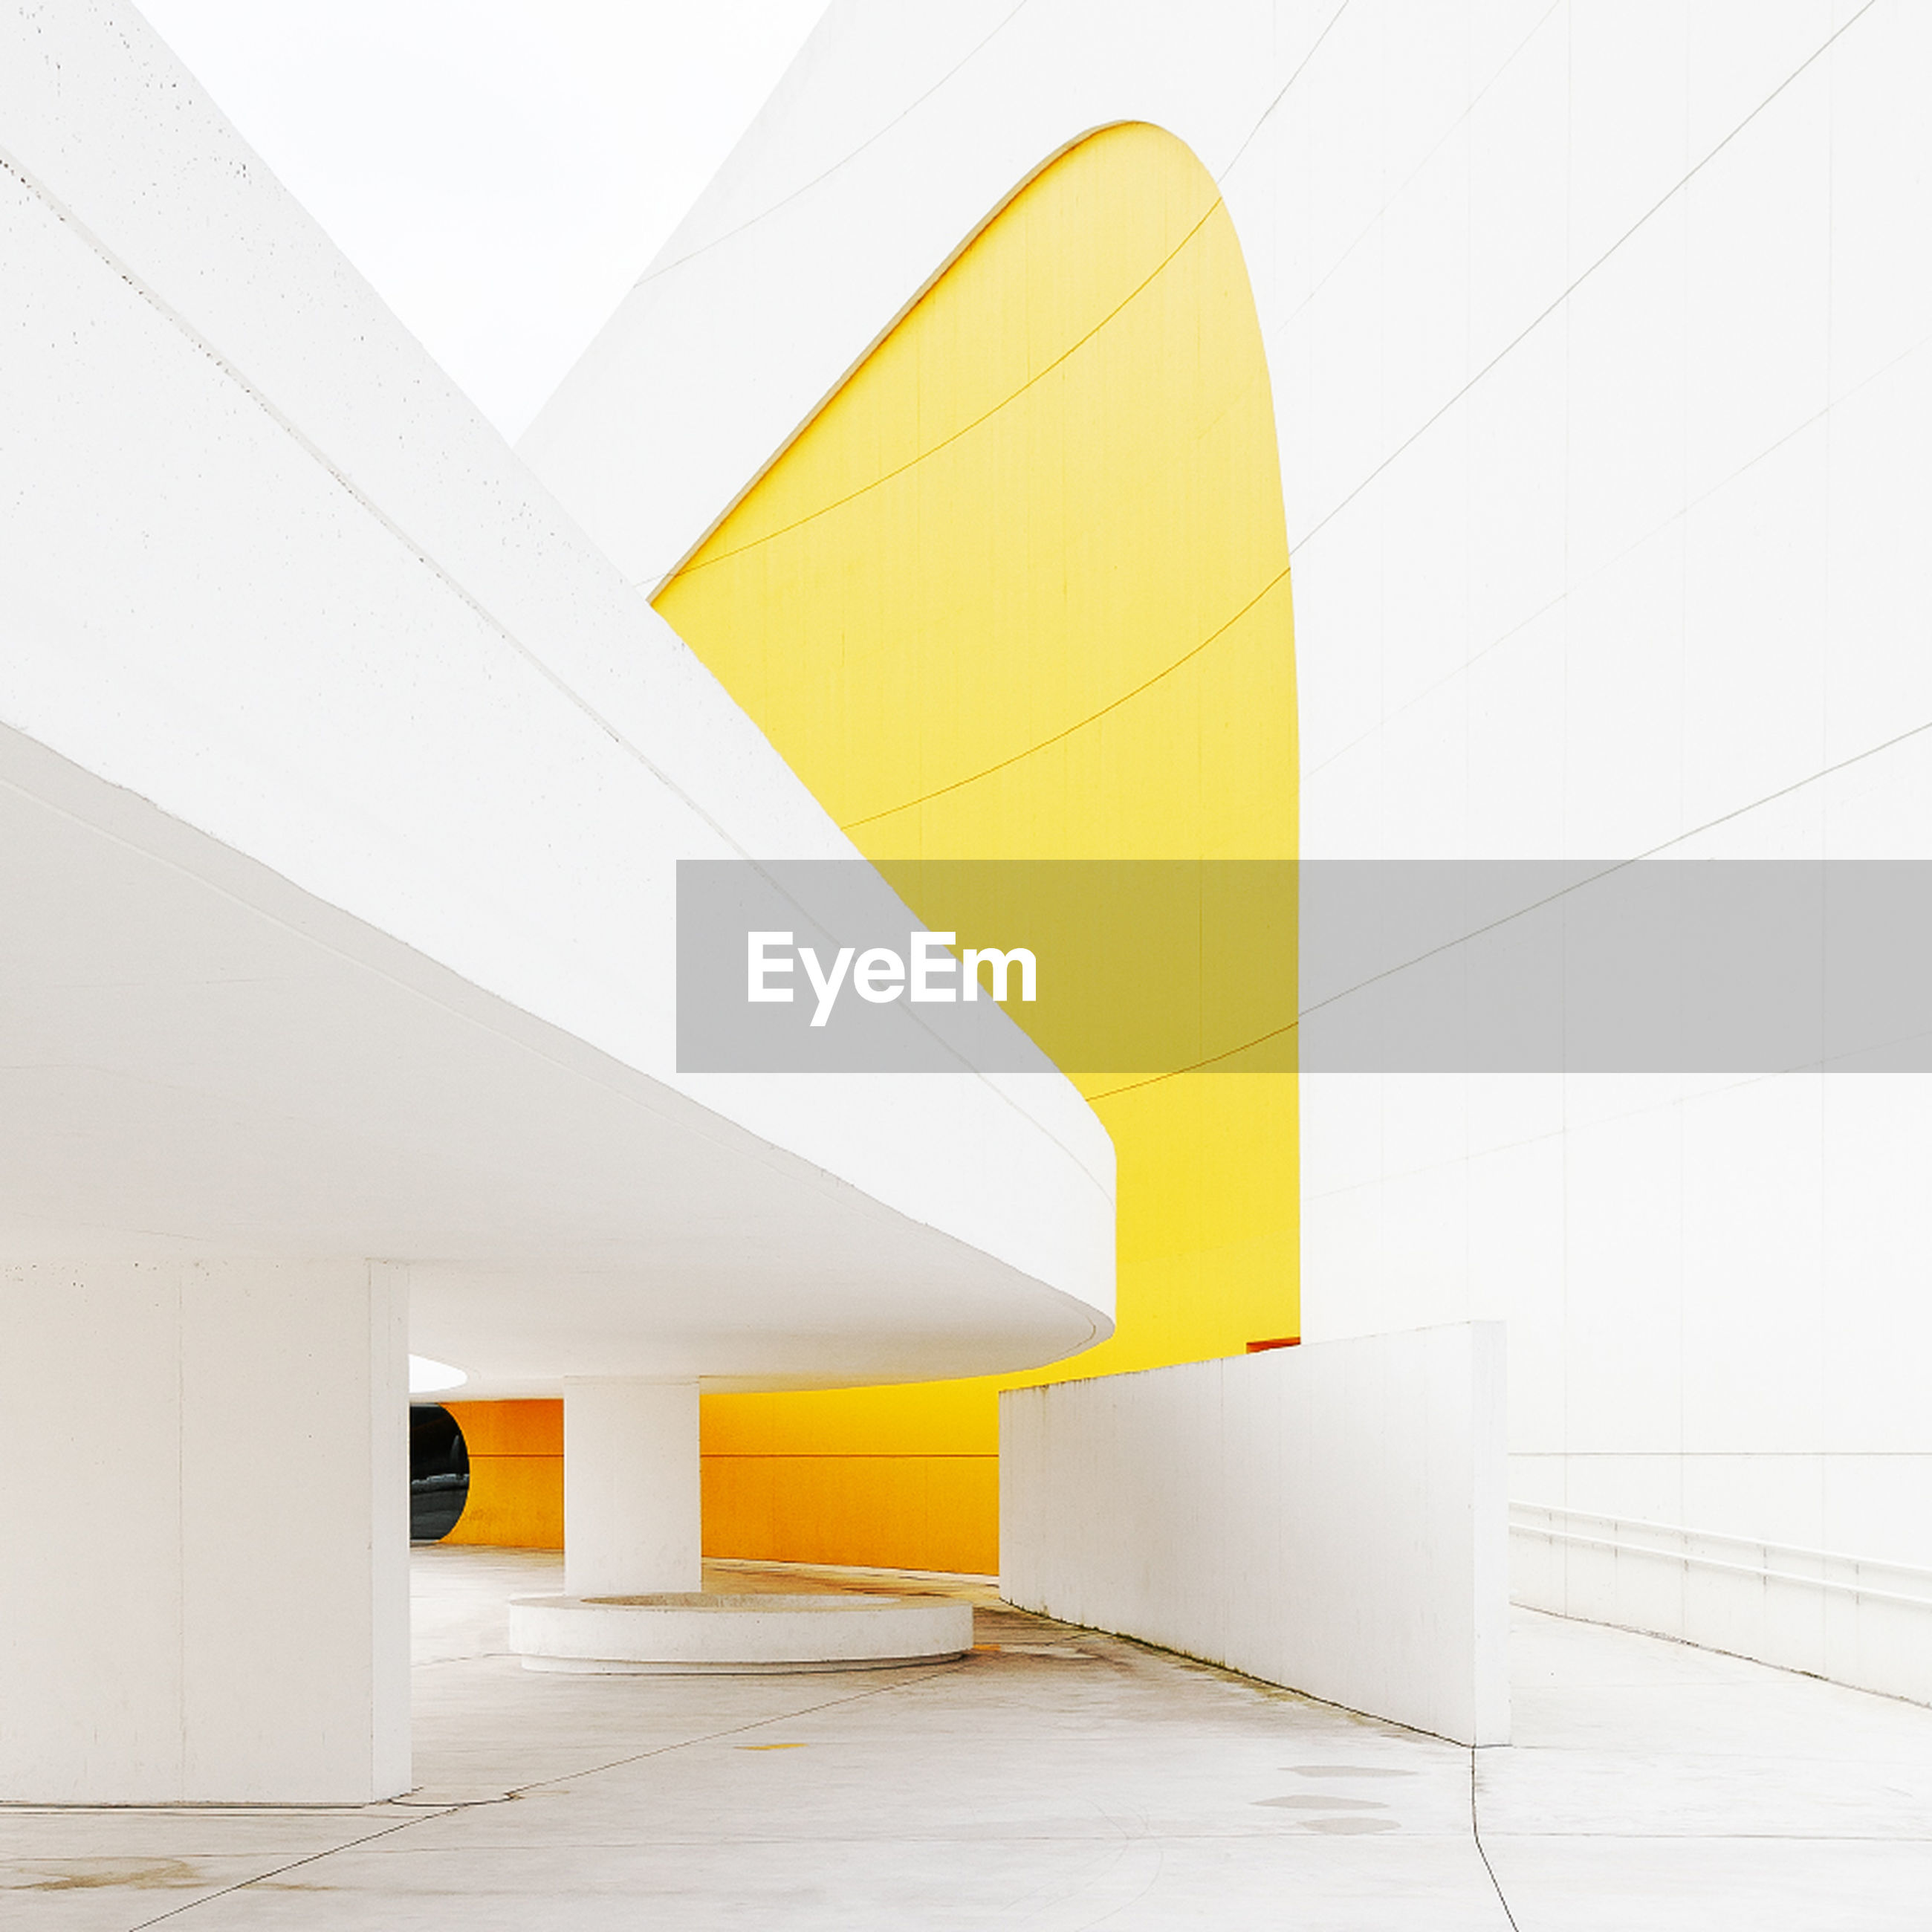 built structure, architecture, white color, yellow, no people, building, wall - building feature, building exterior, modern, day, outdoors, wall, flooring, architectural column, sunlight, orange color, empty, nature, city, ceiling, blank